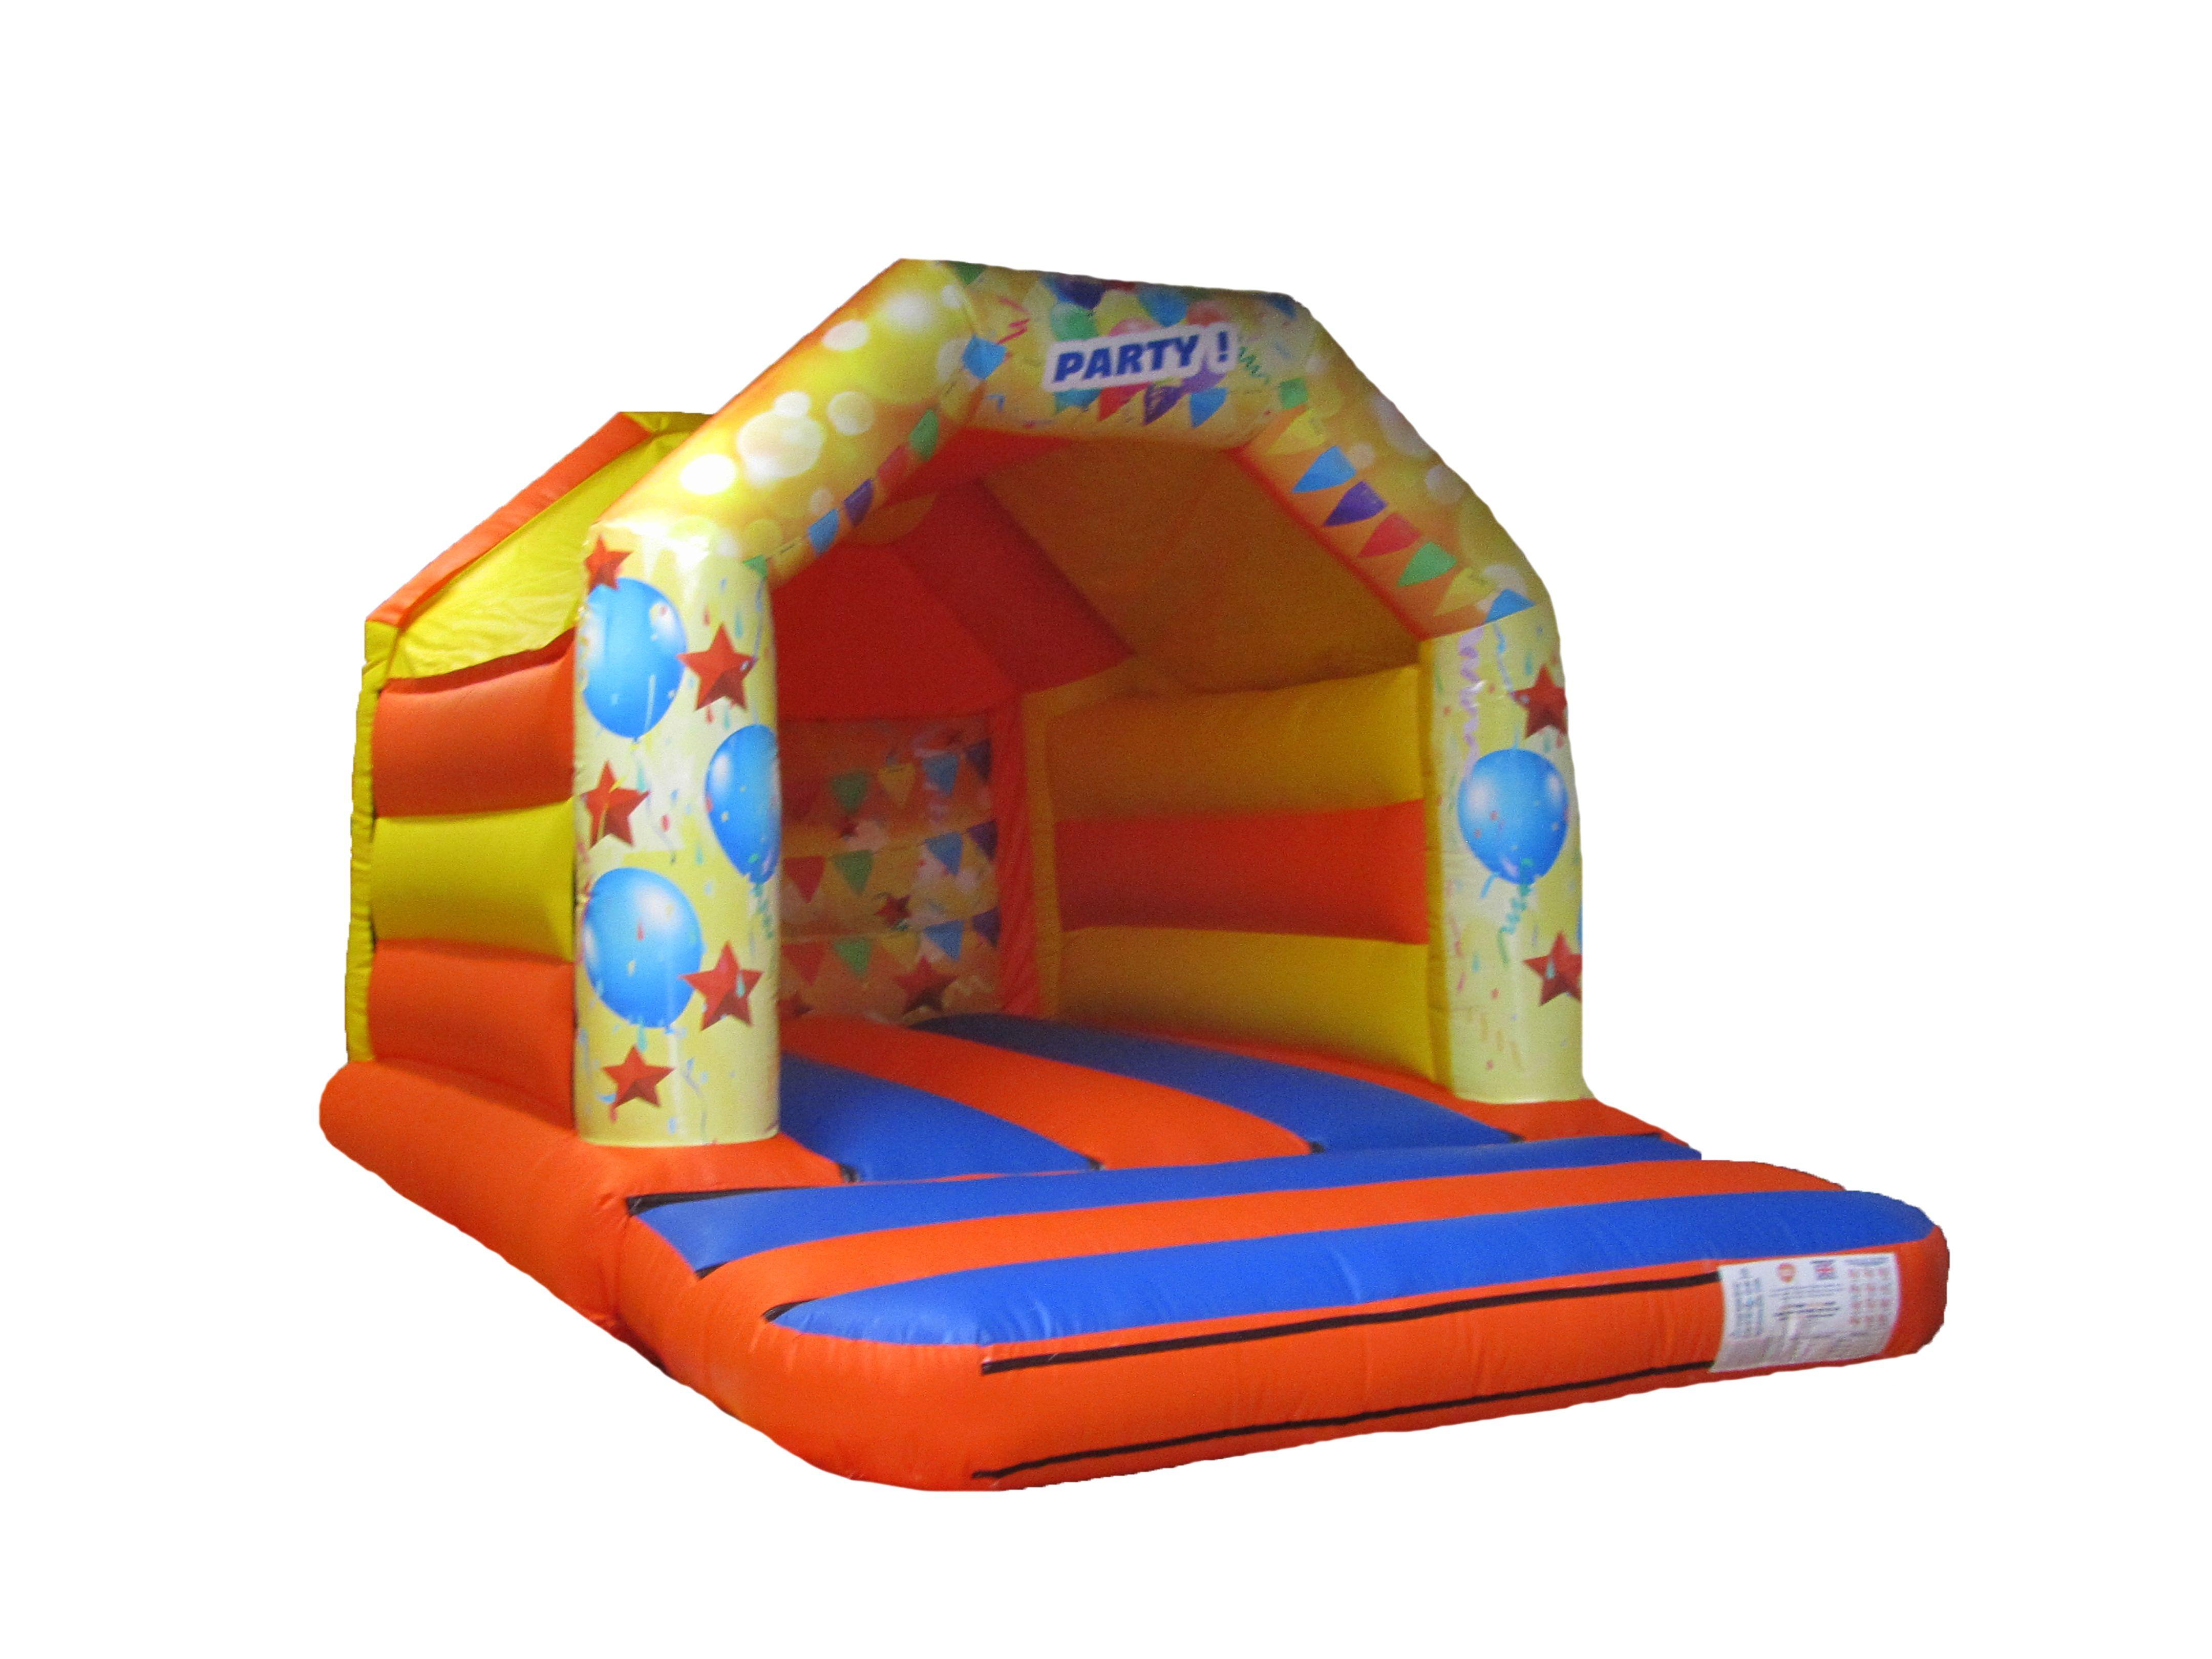 Party Themed Commercial Bouncy Castle